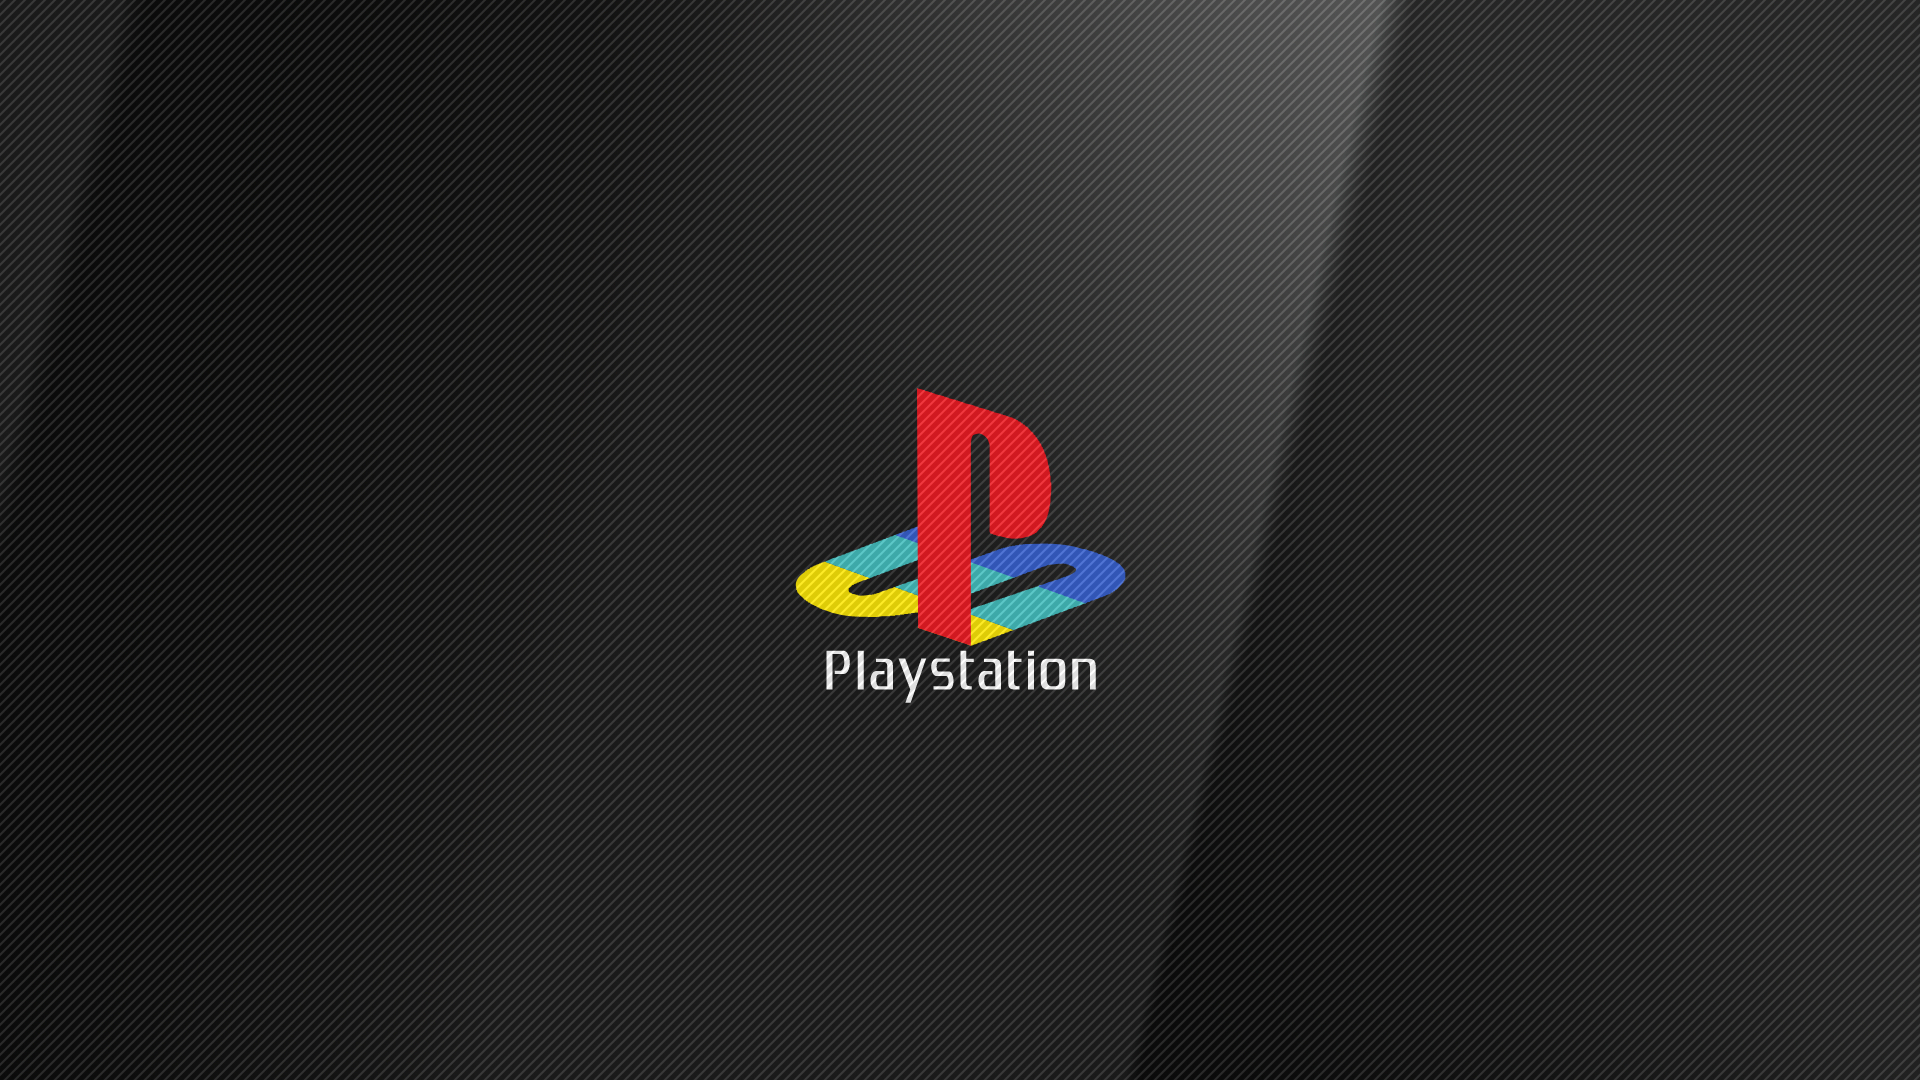 sony playstation logo wallpaper 41197 1920x1080 px ~ hdwallsource